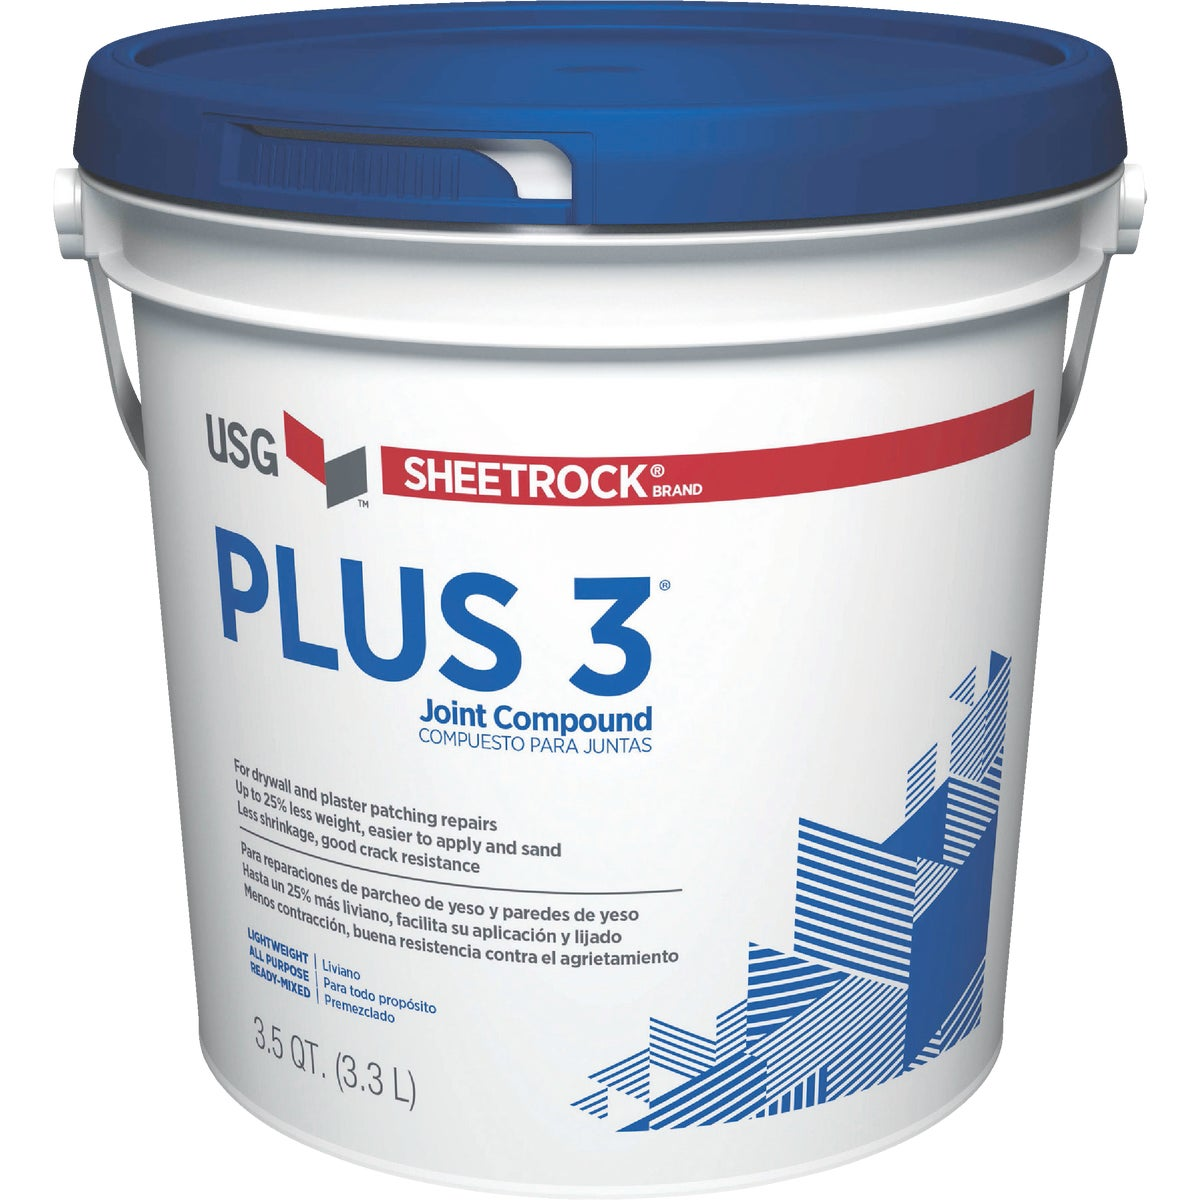 GAL PLUS3 JOINT COMPOUND